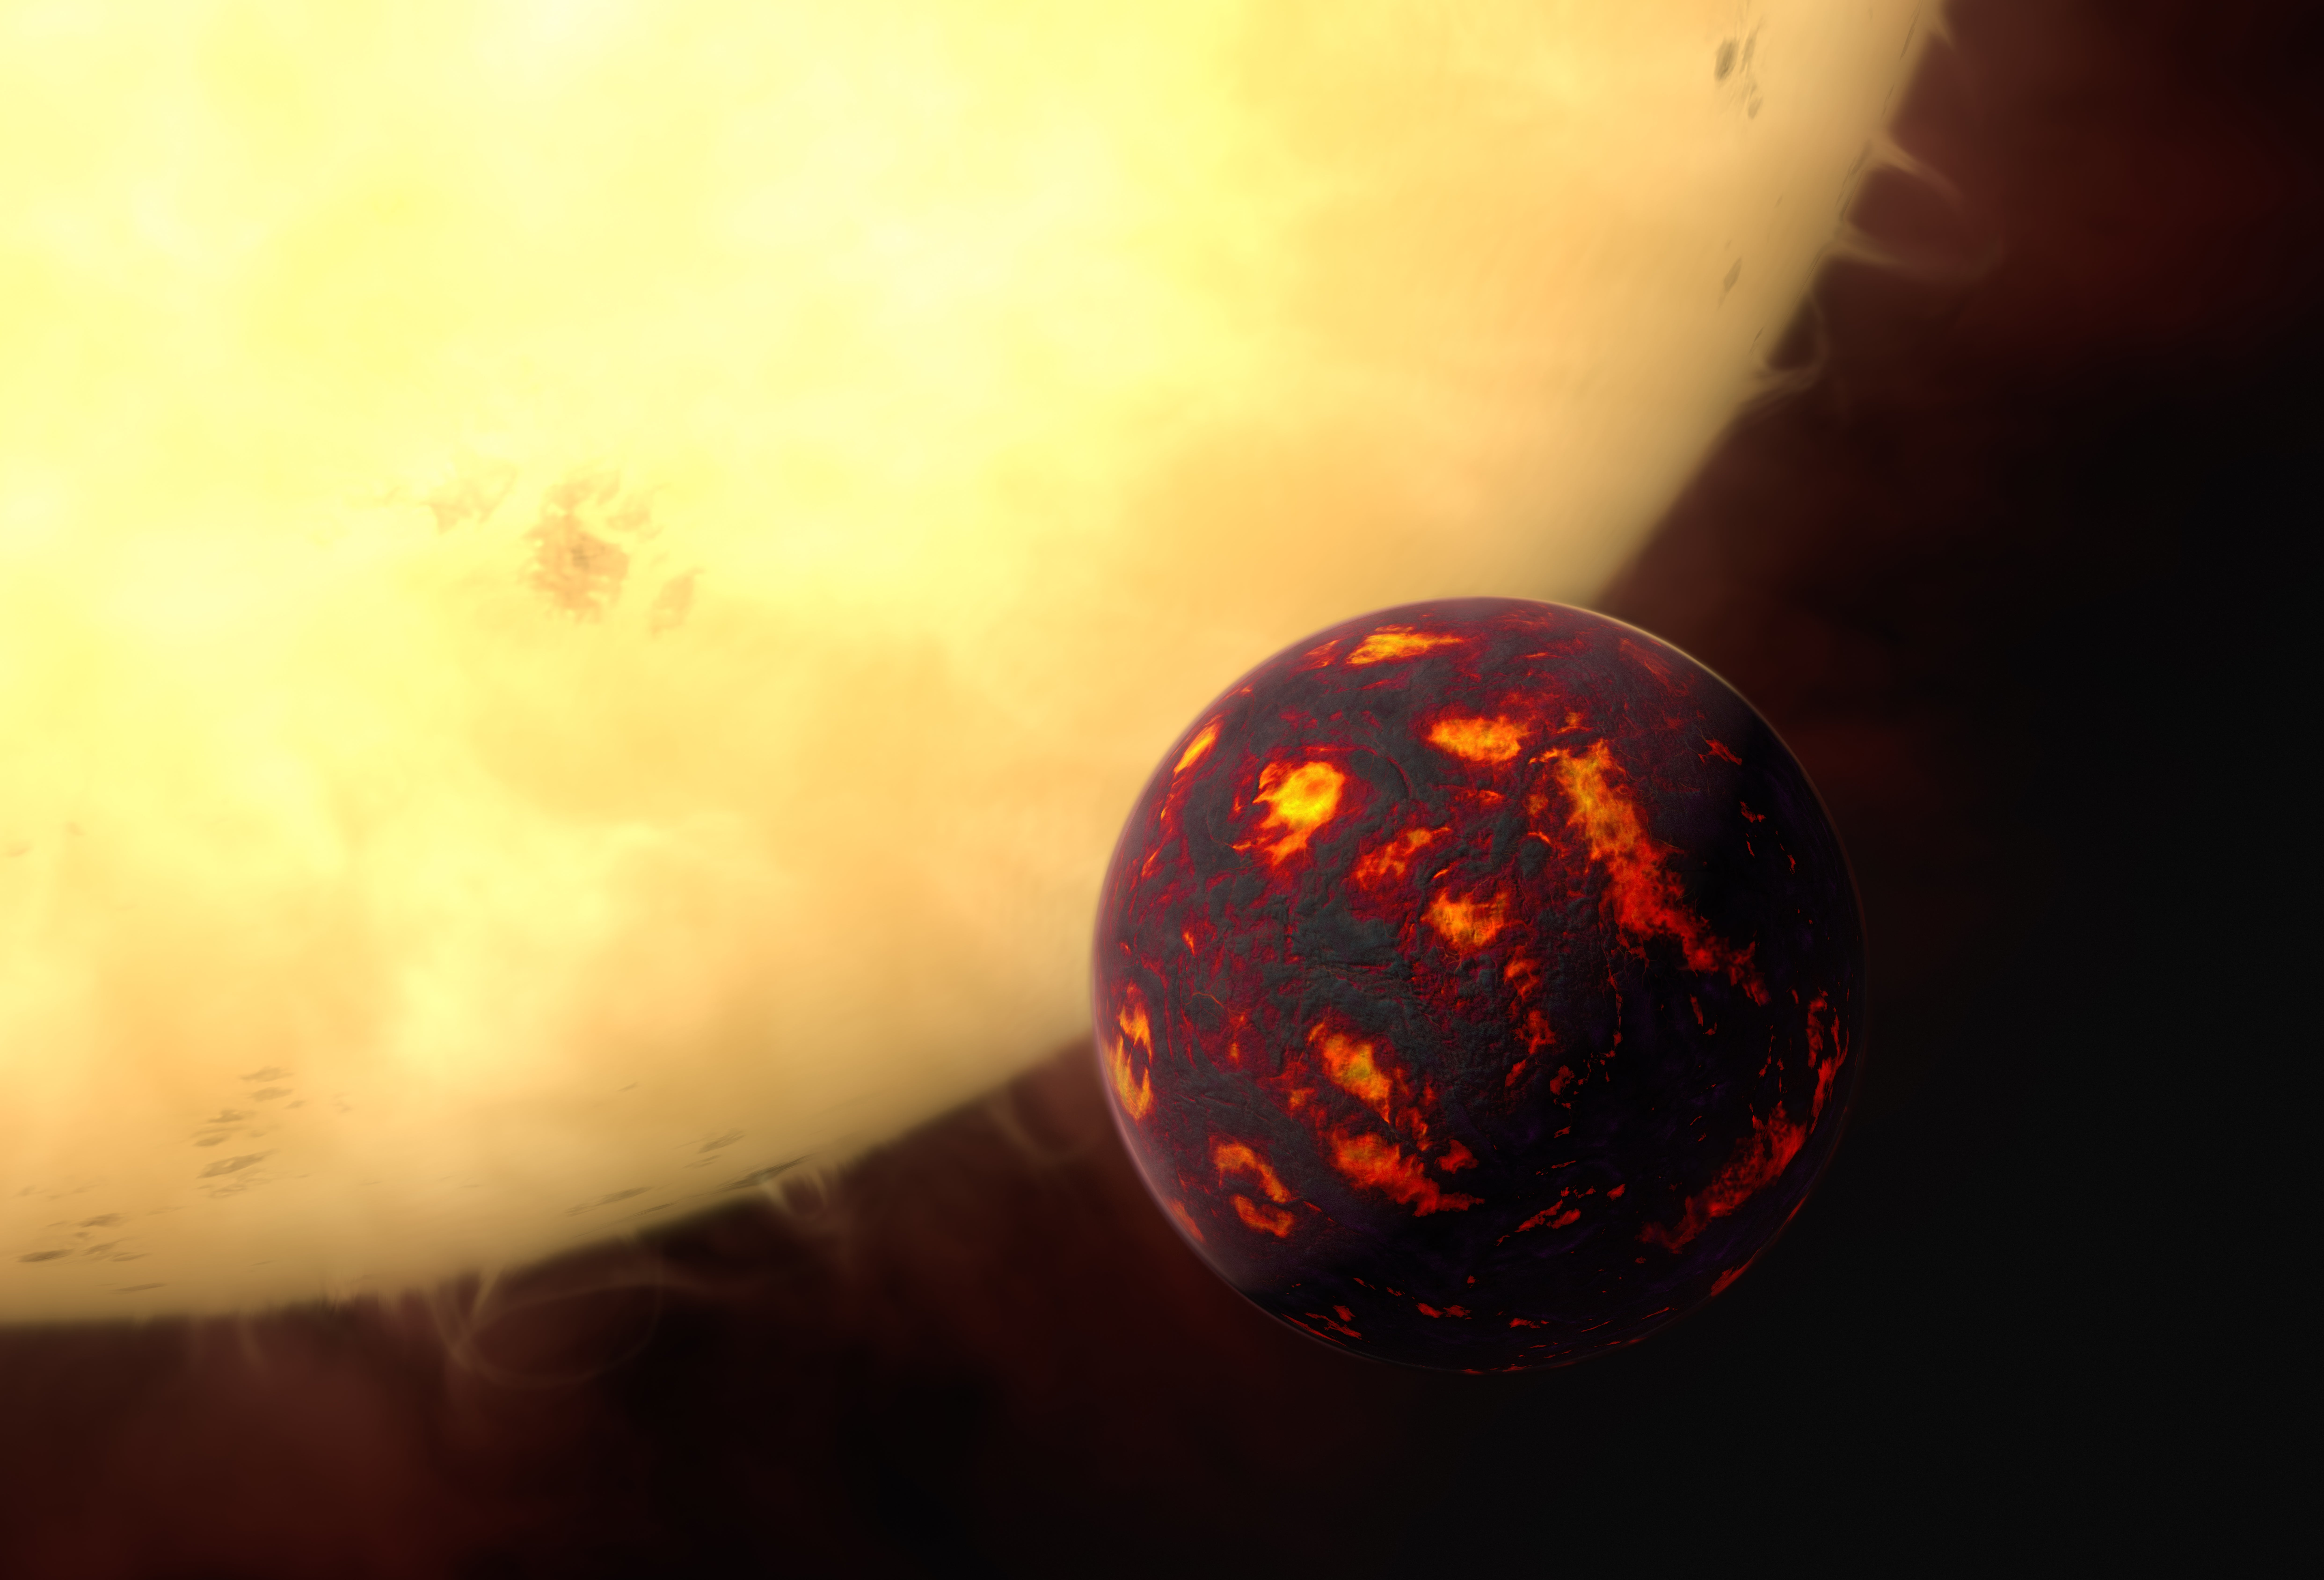 No one really knows how to name exoplanets